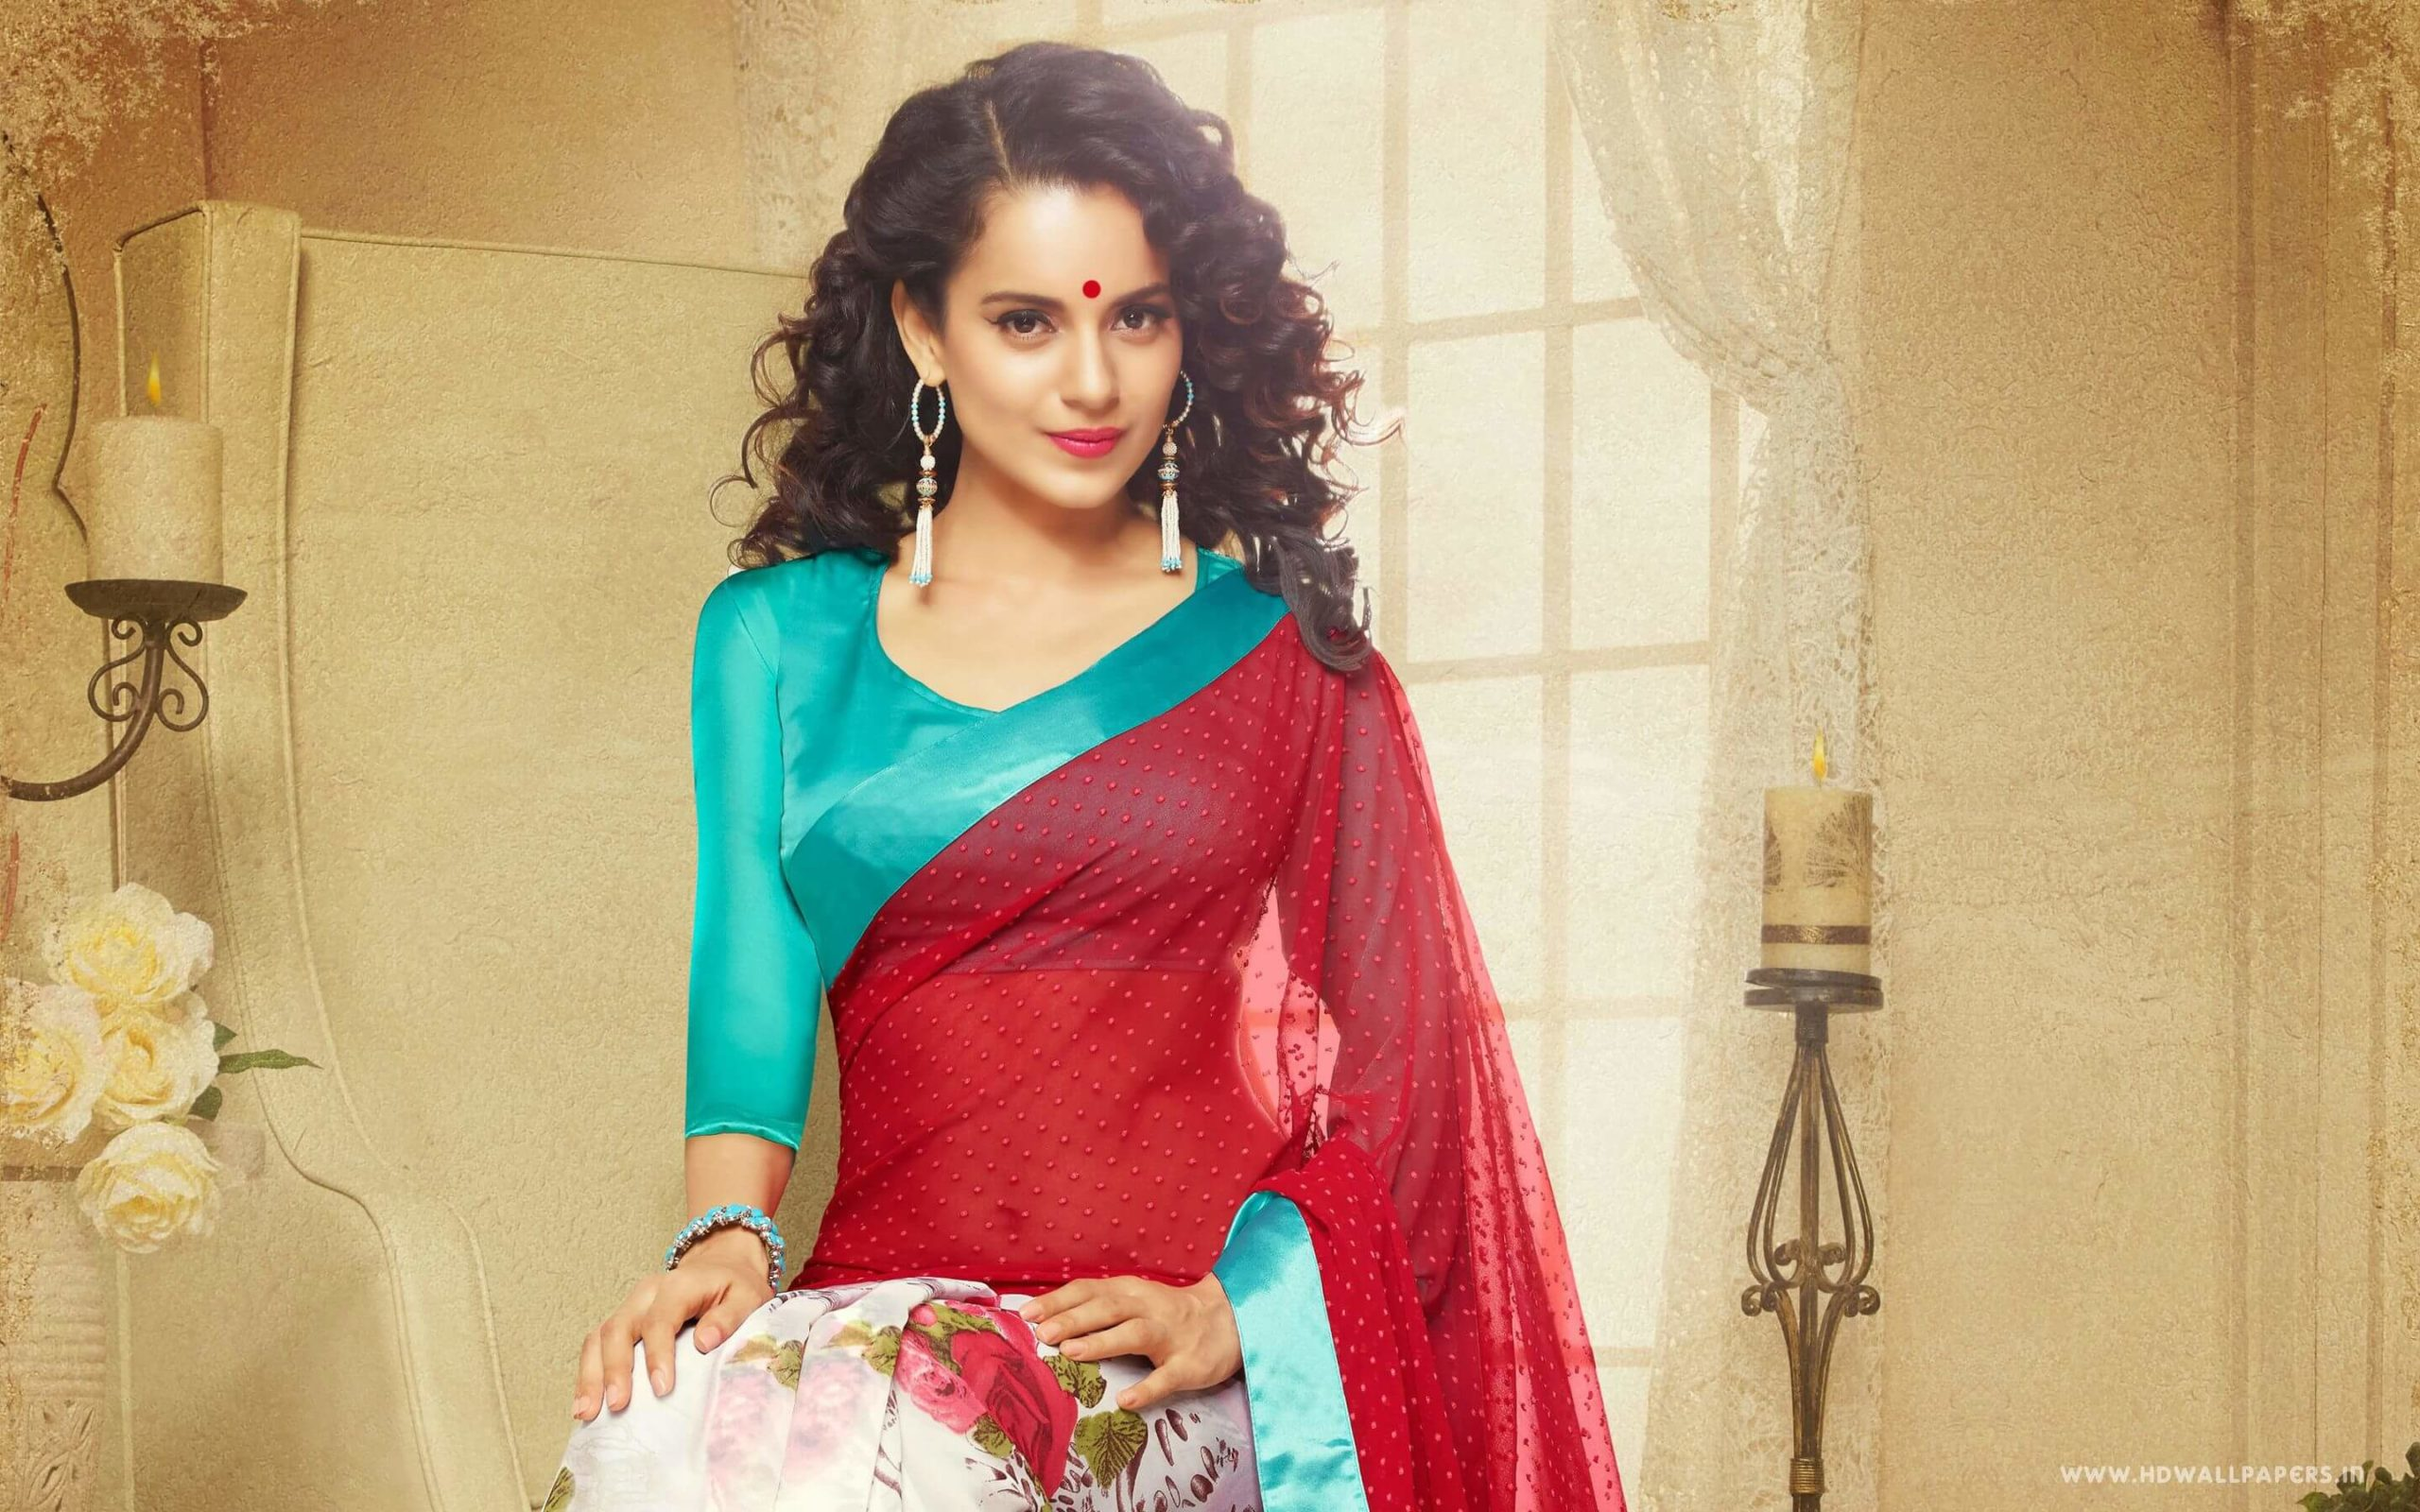 Kangana Ranaut Age, Sister, Image, Latest News, Net Worth, Biography, Husband, Height, Awards, Photos, Date Of Birth, Twitter, Instagram, Wiki (46)